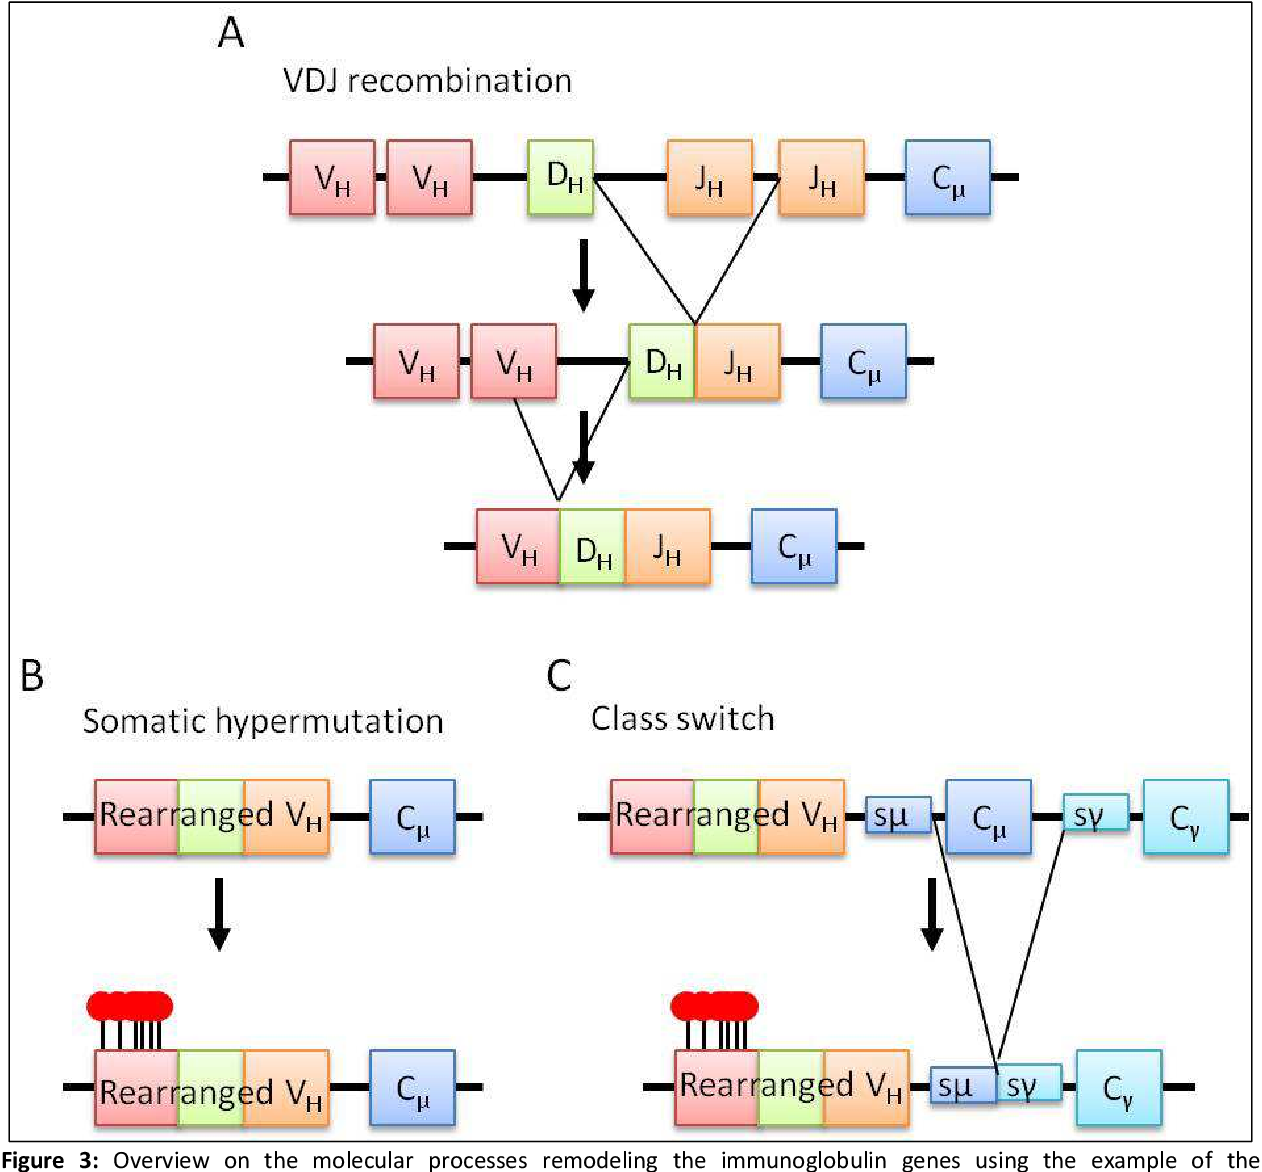 Figure 3: Overview on the molecular processes remodeling the immunoglobulin genes using the example of the immunoglobulin heavy chain (IGH) locus. A: Depicted is the schematic overview on the VDJ recombination. Initially the D gene segment is joined randomly to one of the J gene segments. In a next step one of the V gene segments is joined to the DJ segment. B: After VDJ recombination and after encounter of an antigen, the somatic hypermutation machinery is activated in the germinal center. This leads to the introduction of mutations at a high rate in the V region of the heavy and the light chain (indicated by the lollipops). C: The final step in the affinity maturation of the immunoglobulin genes is the class switch which only occurs on the heavy chain locus. This mechanism is based on a type of non-homologous end joining between the so called switch regions (here shown for sμ and sγ). These lie adjacent to each C gene segment and direct the class switch. Modified from [4].